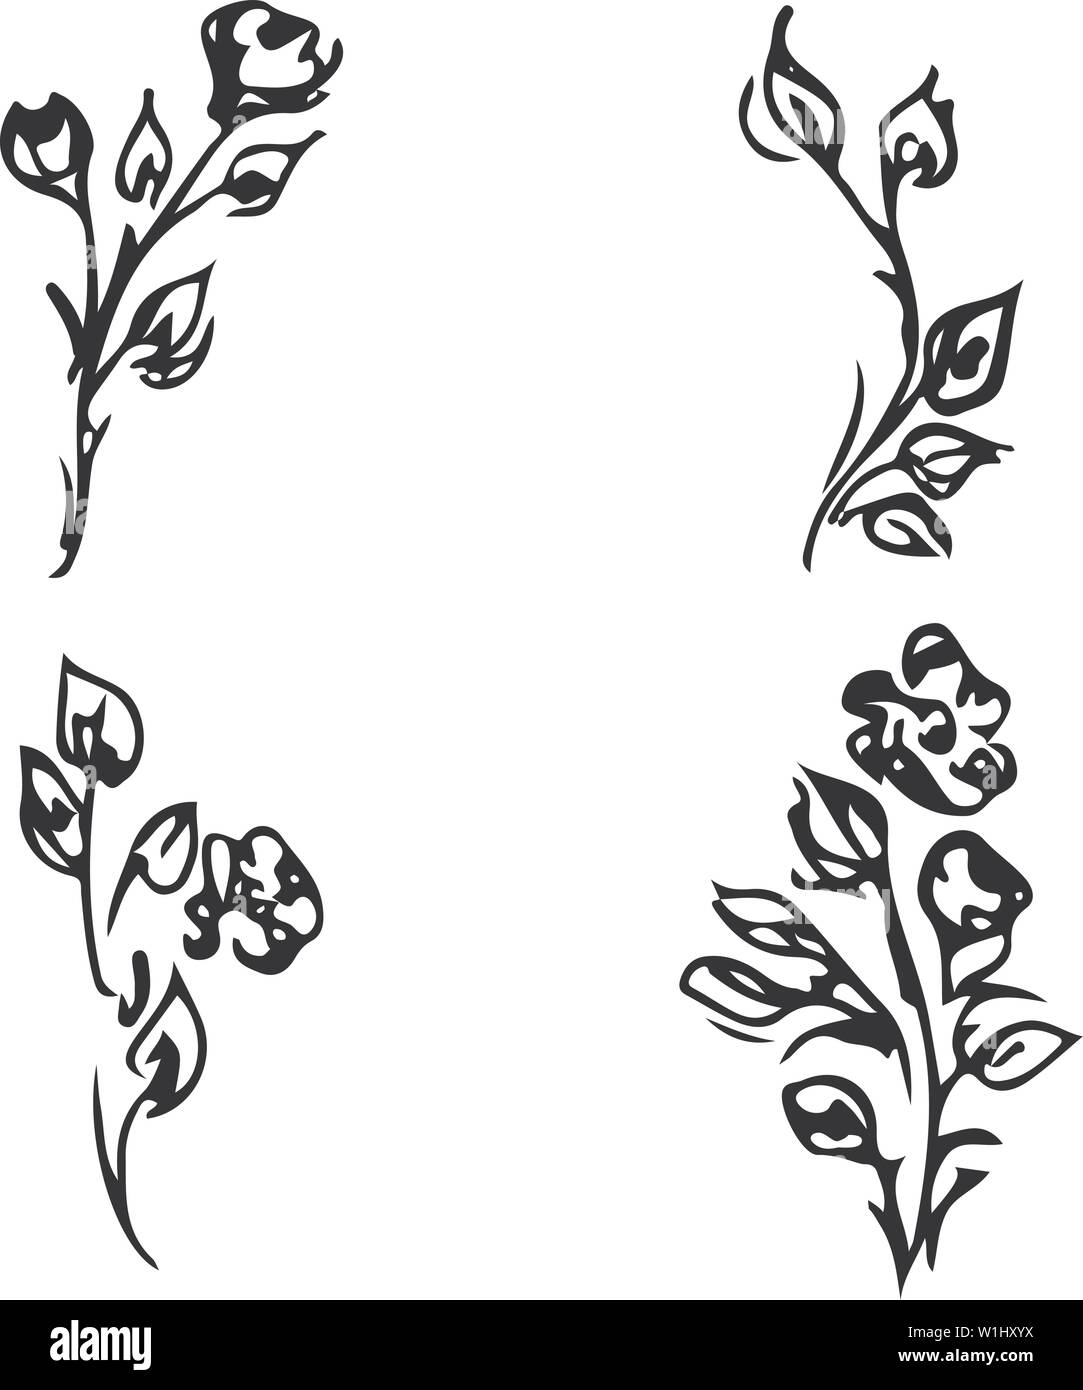 Flowers and branches isolated on white background. Hand drawn doodle collection. 4 floral graphic elements. Big vector set. Outline floral logotypes. Stock Vector